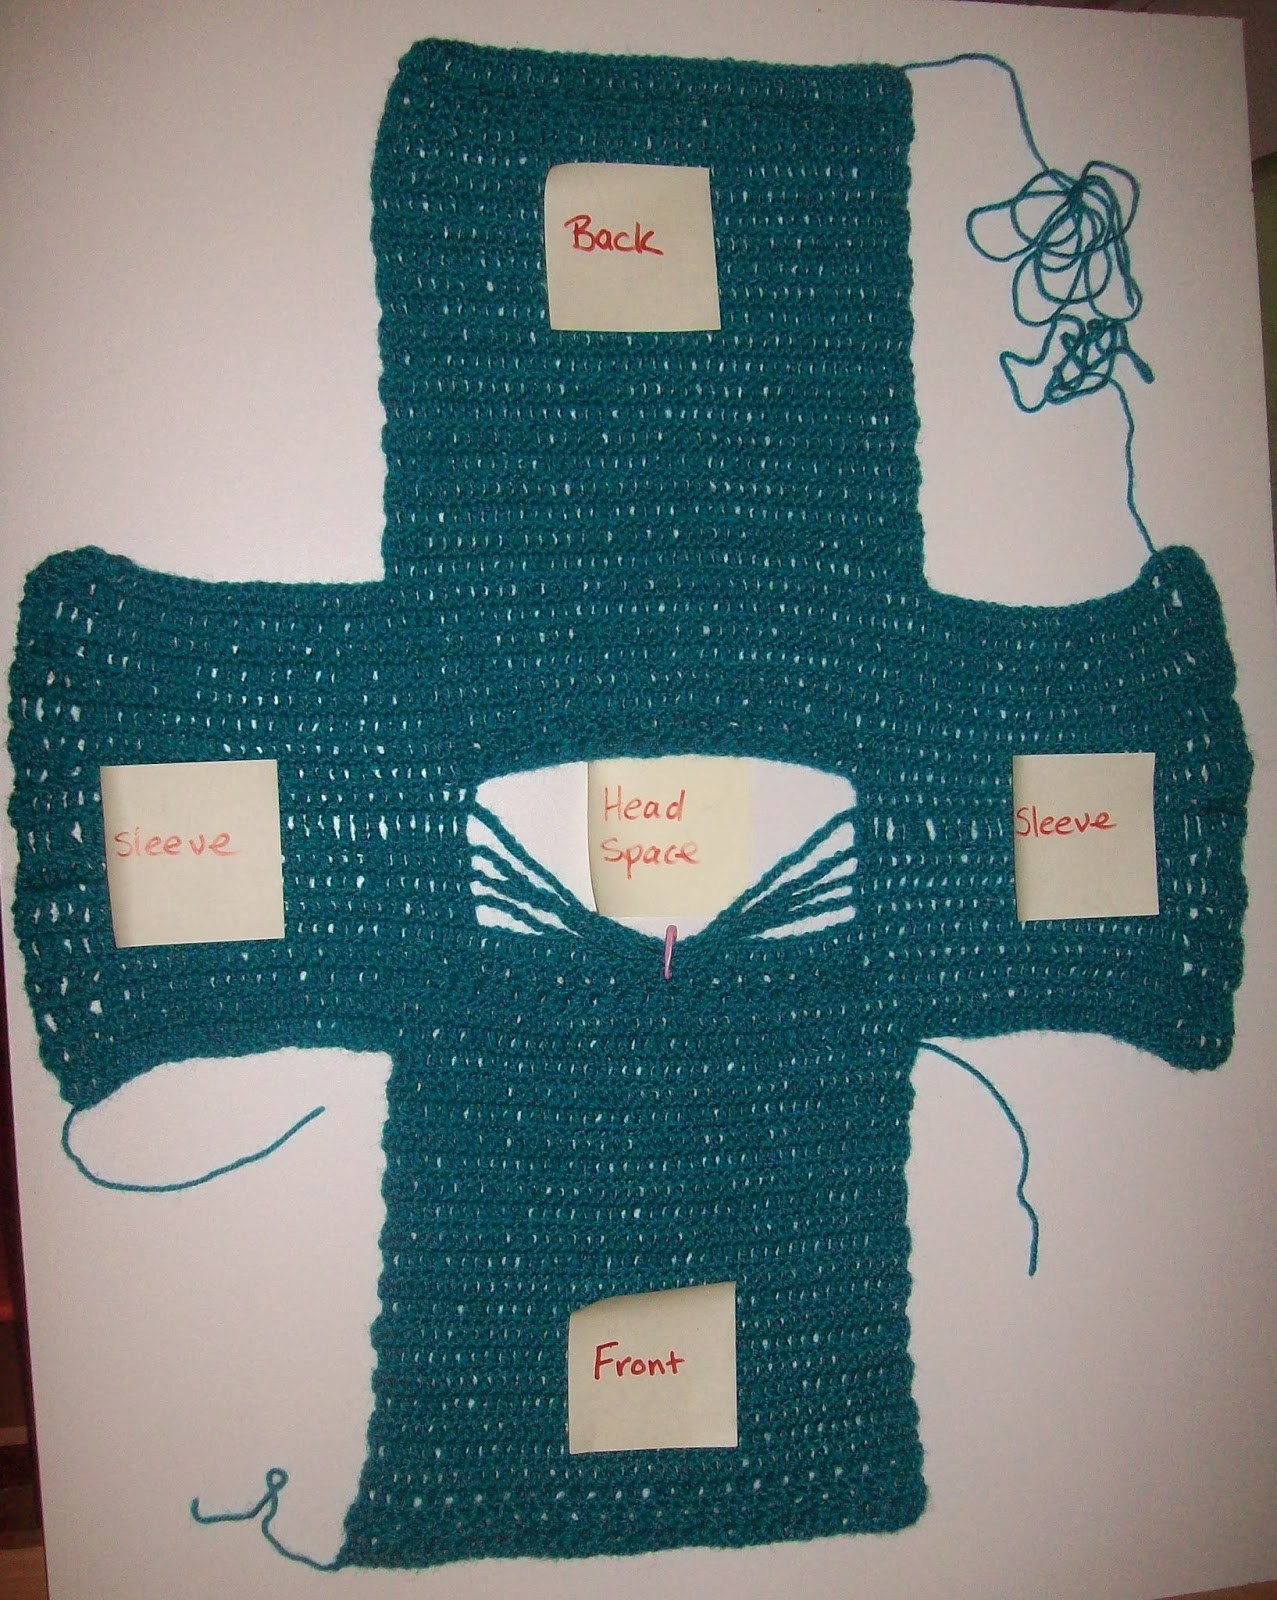 How To Knit A Simple Cat Sweater: Cat sweater patterns « free ...